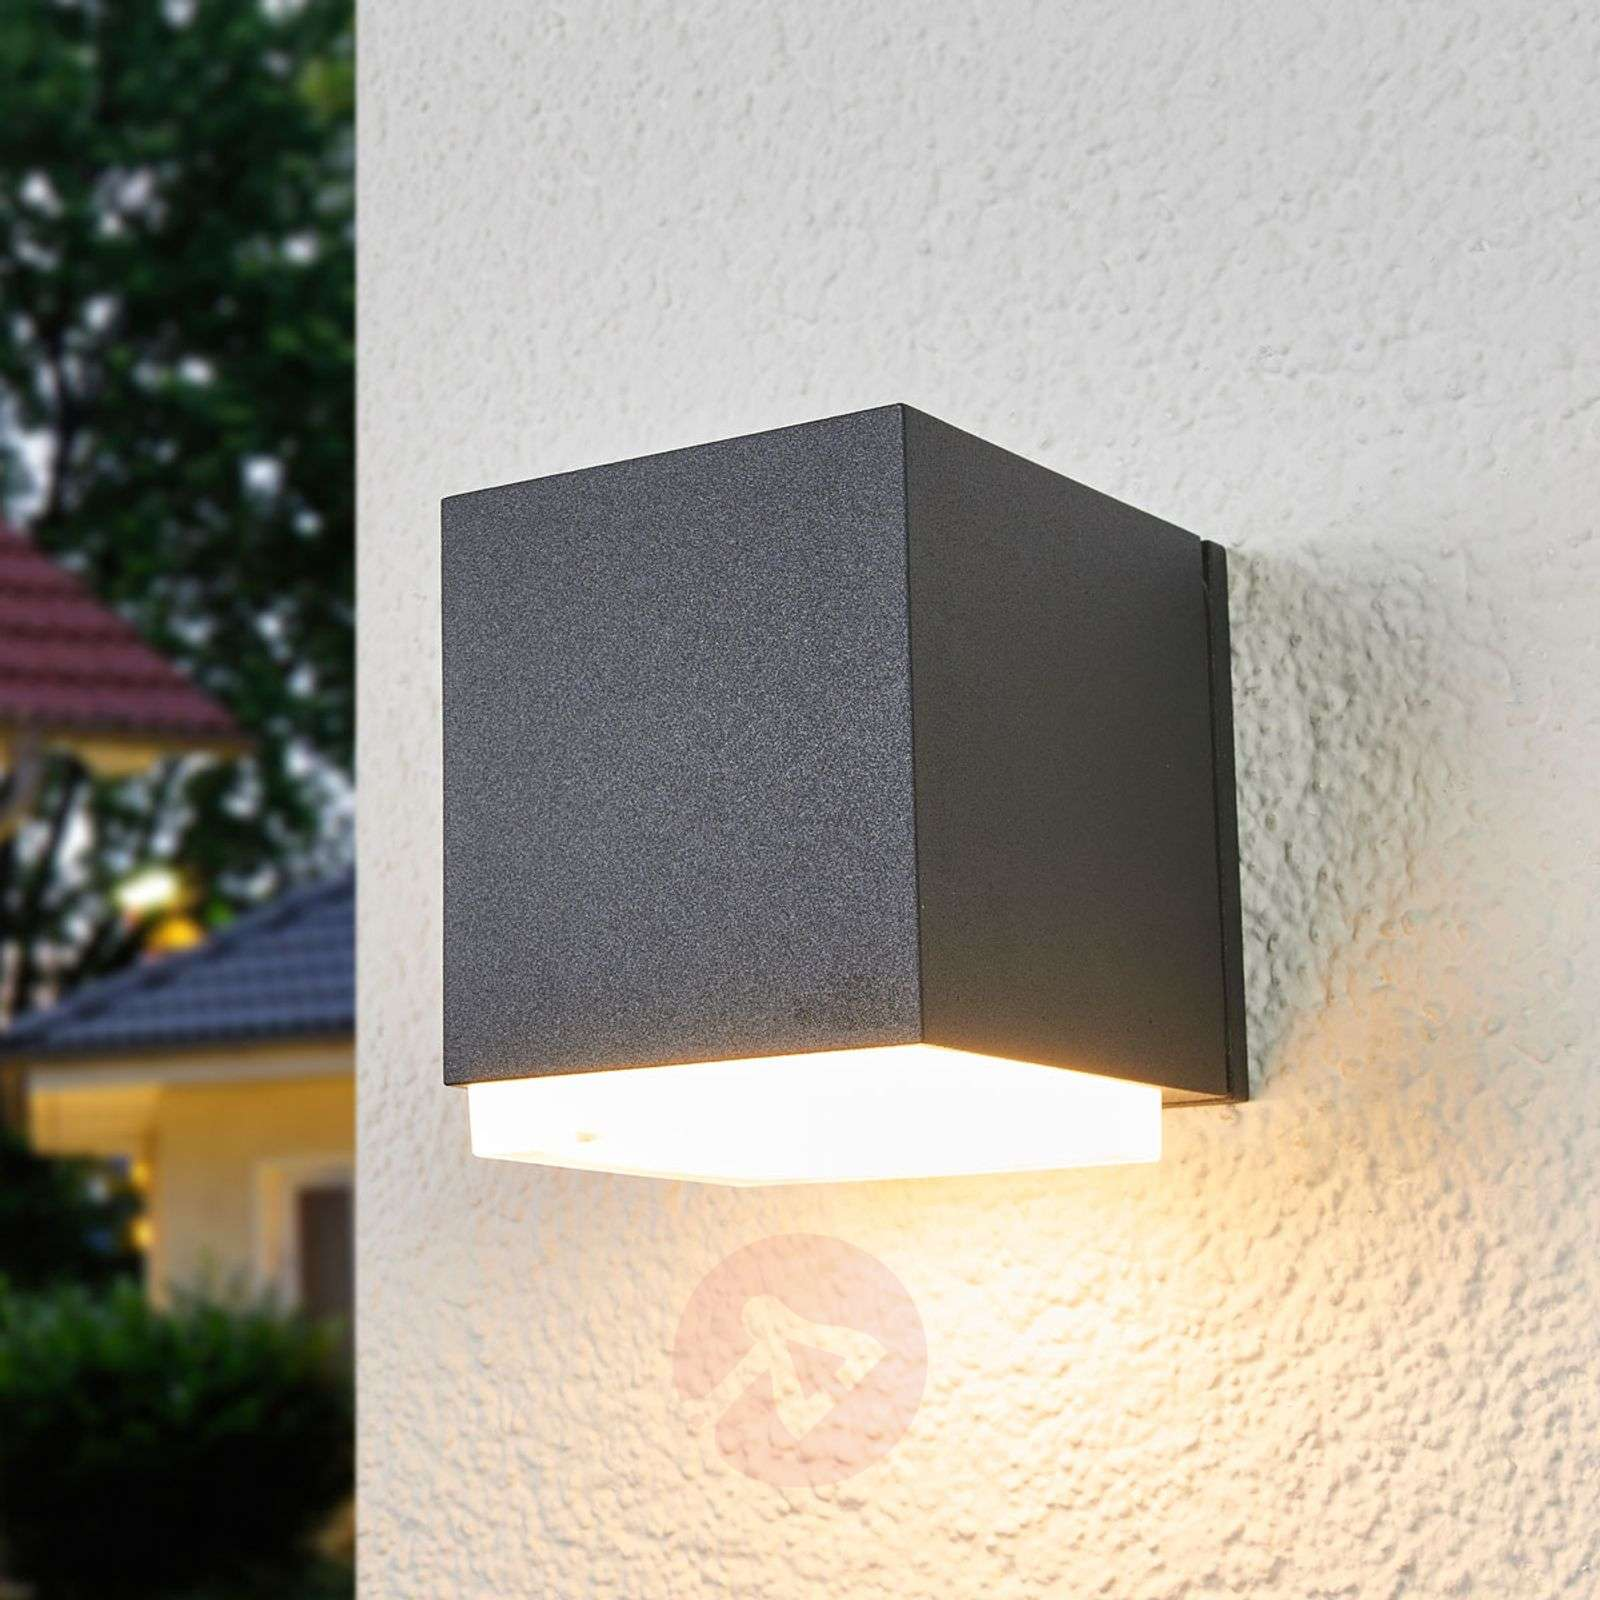 Acquista applique da esterni ben a cubo luce downlight lampade.it